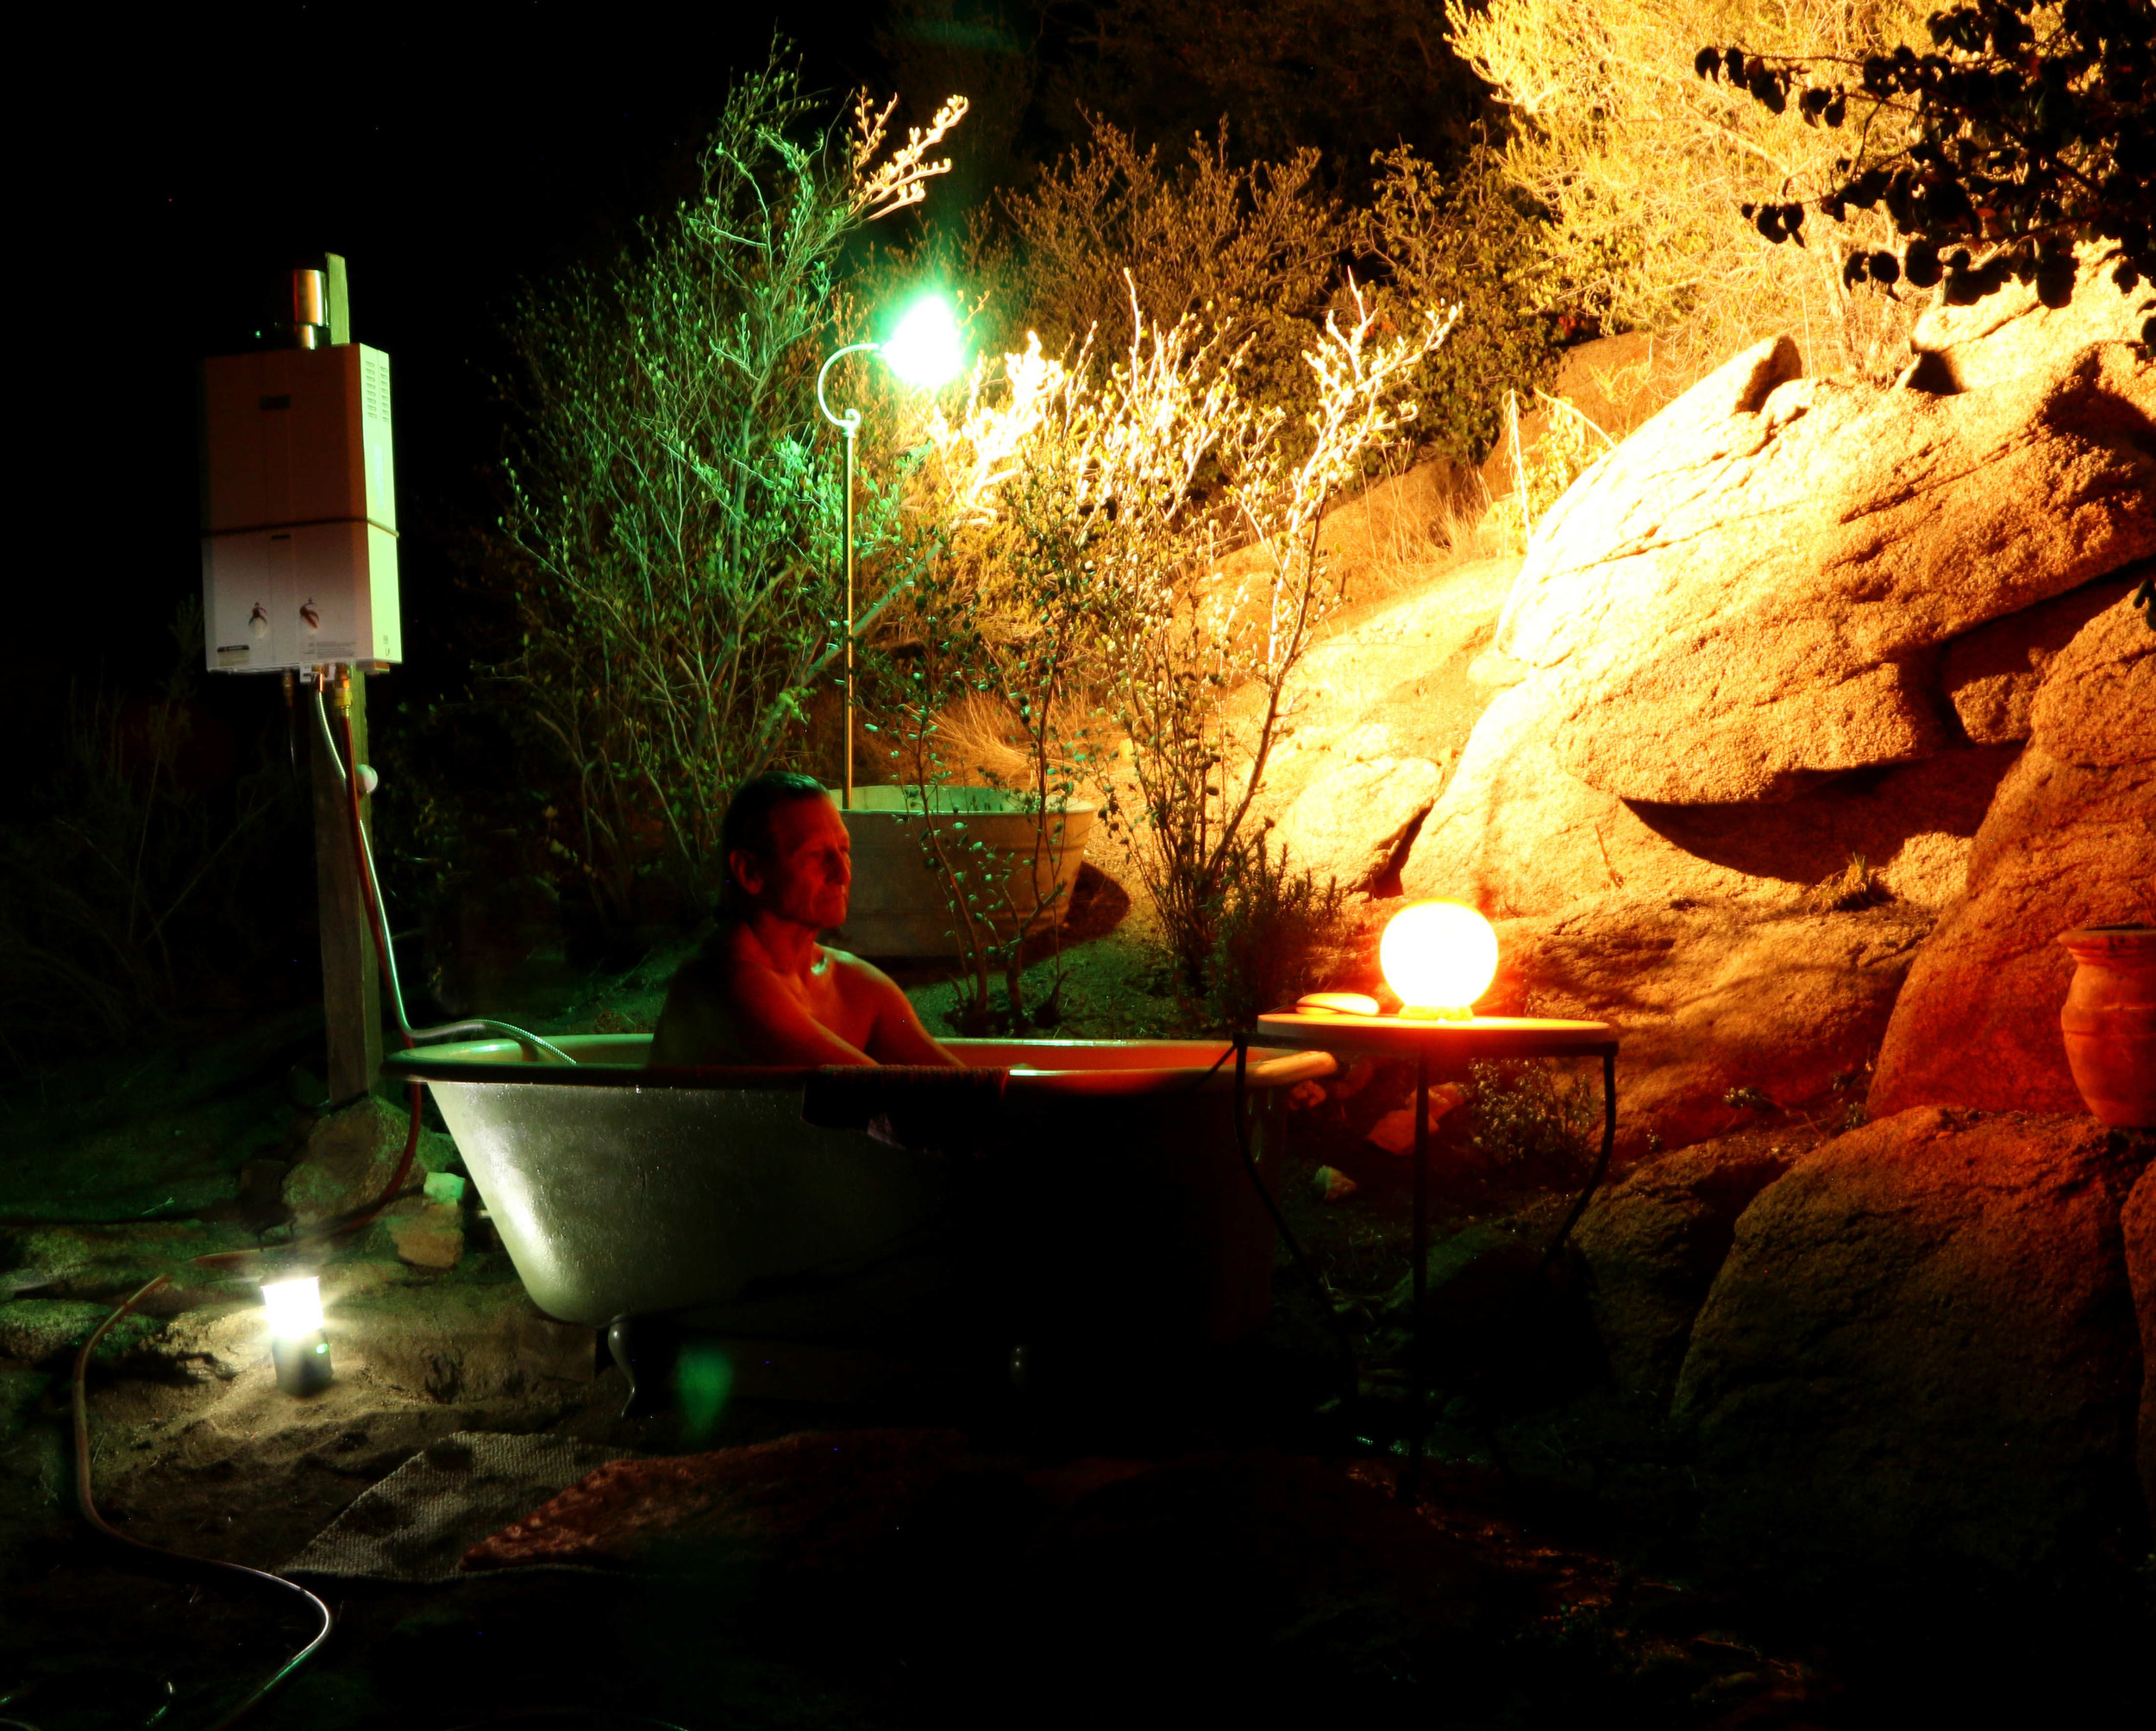 Enjoying our outdoor bathroom where we can take a bath anytime day or night becasue of endless hot water.